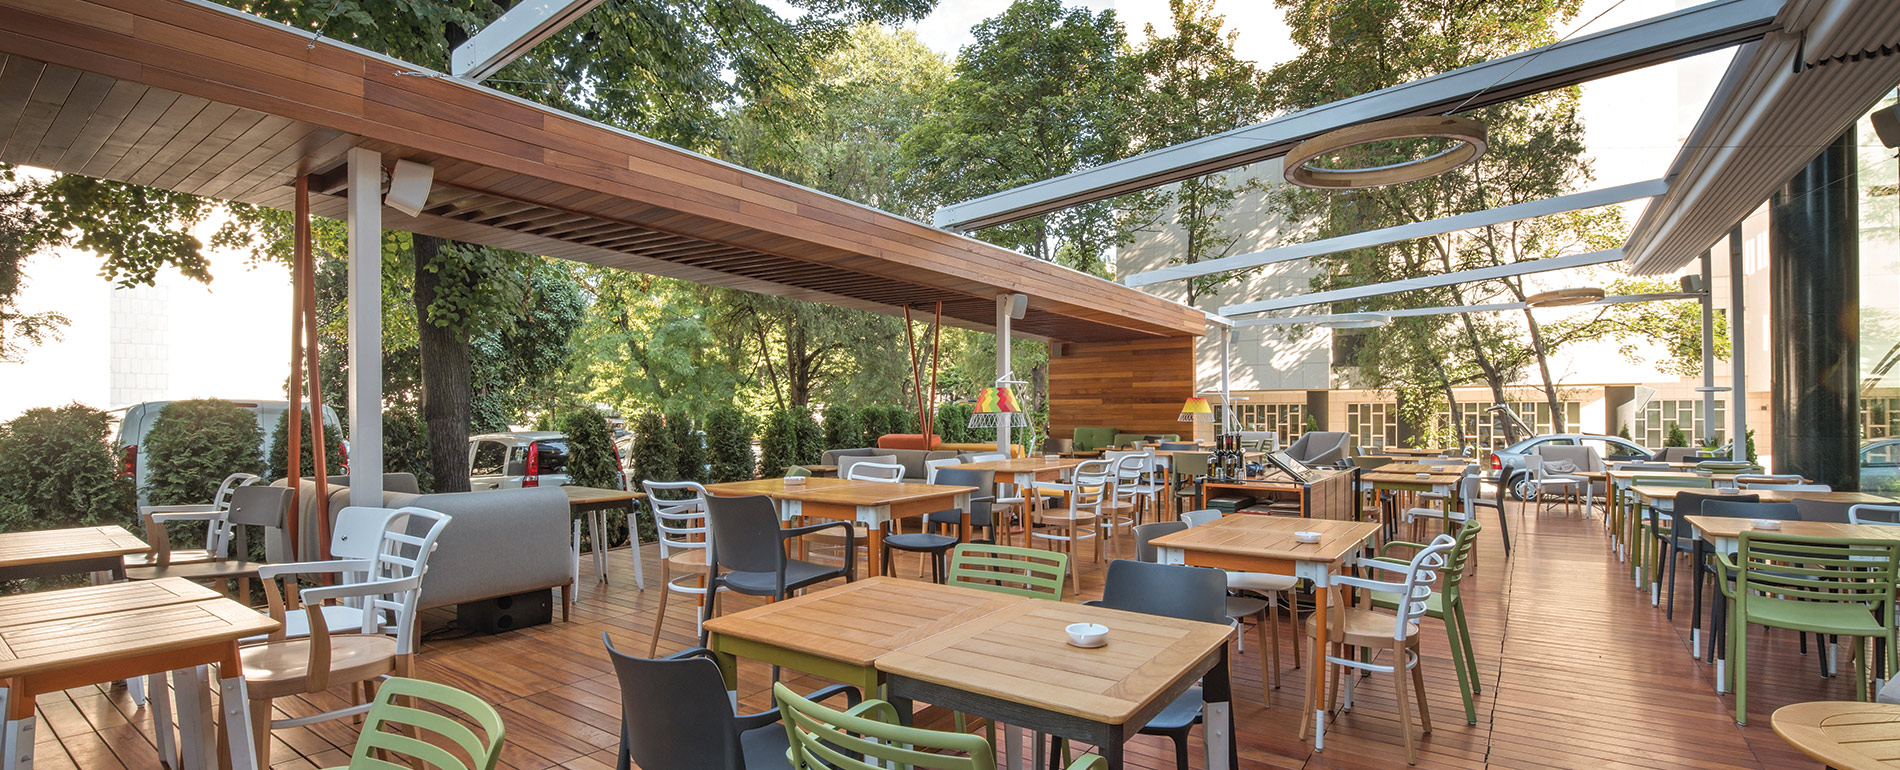 5 Benefits of Patio Dining for Restaurants